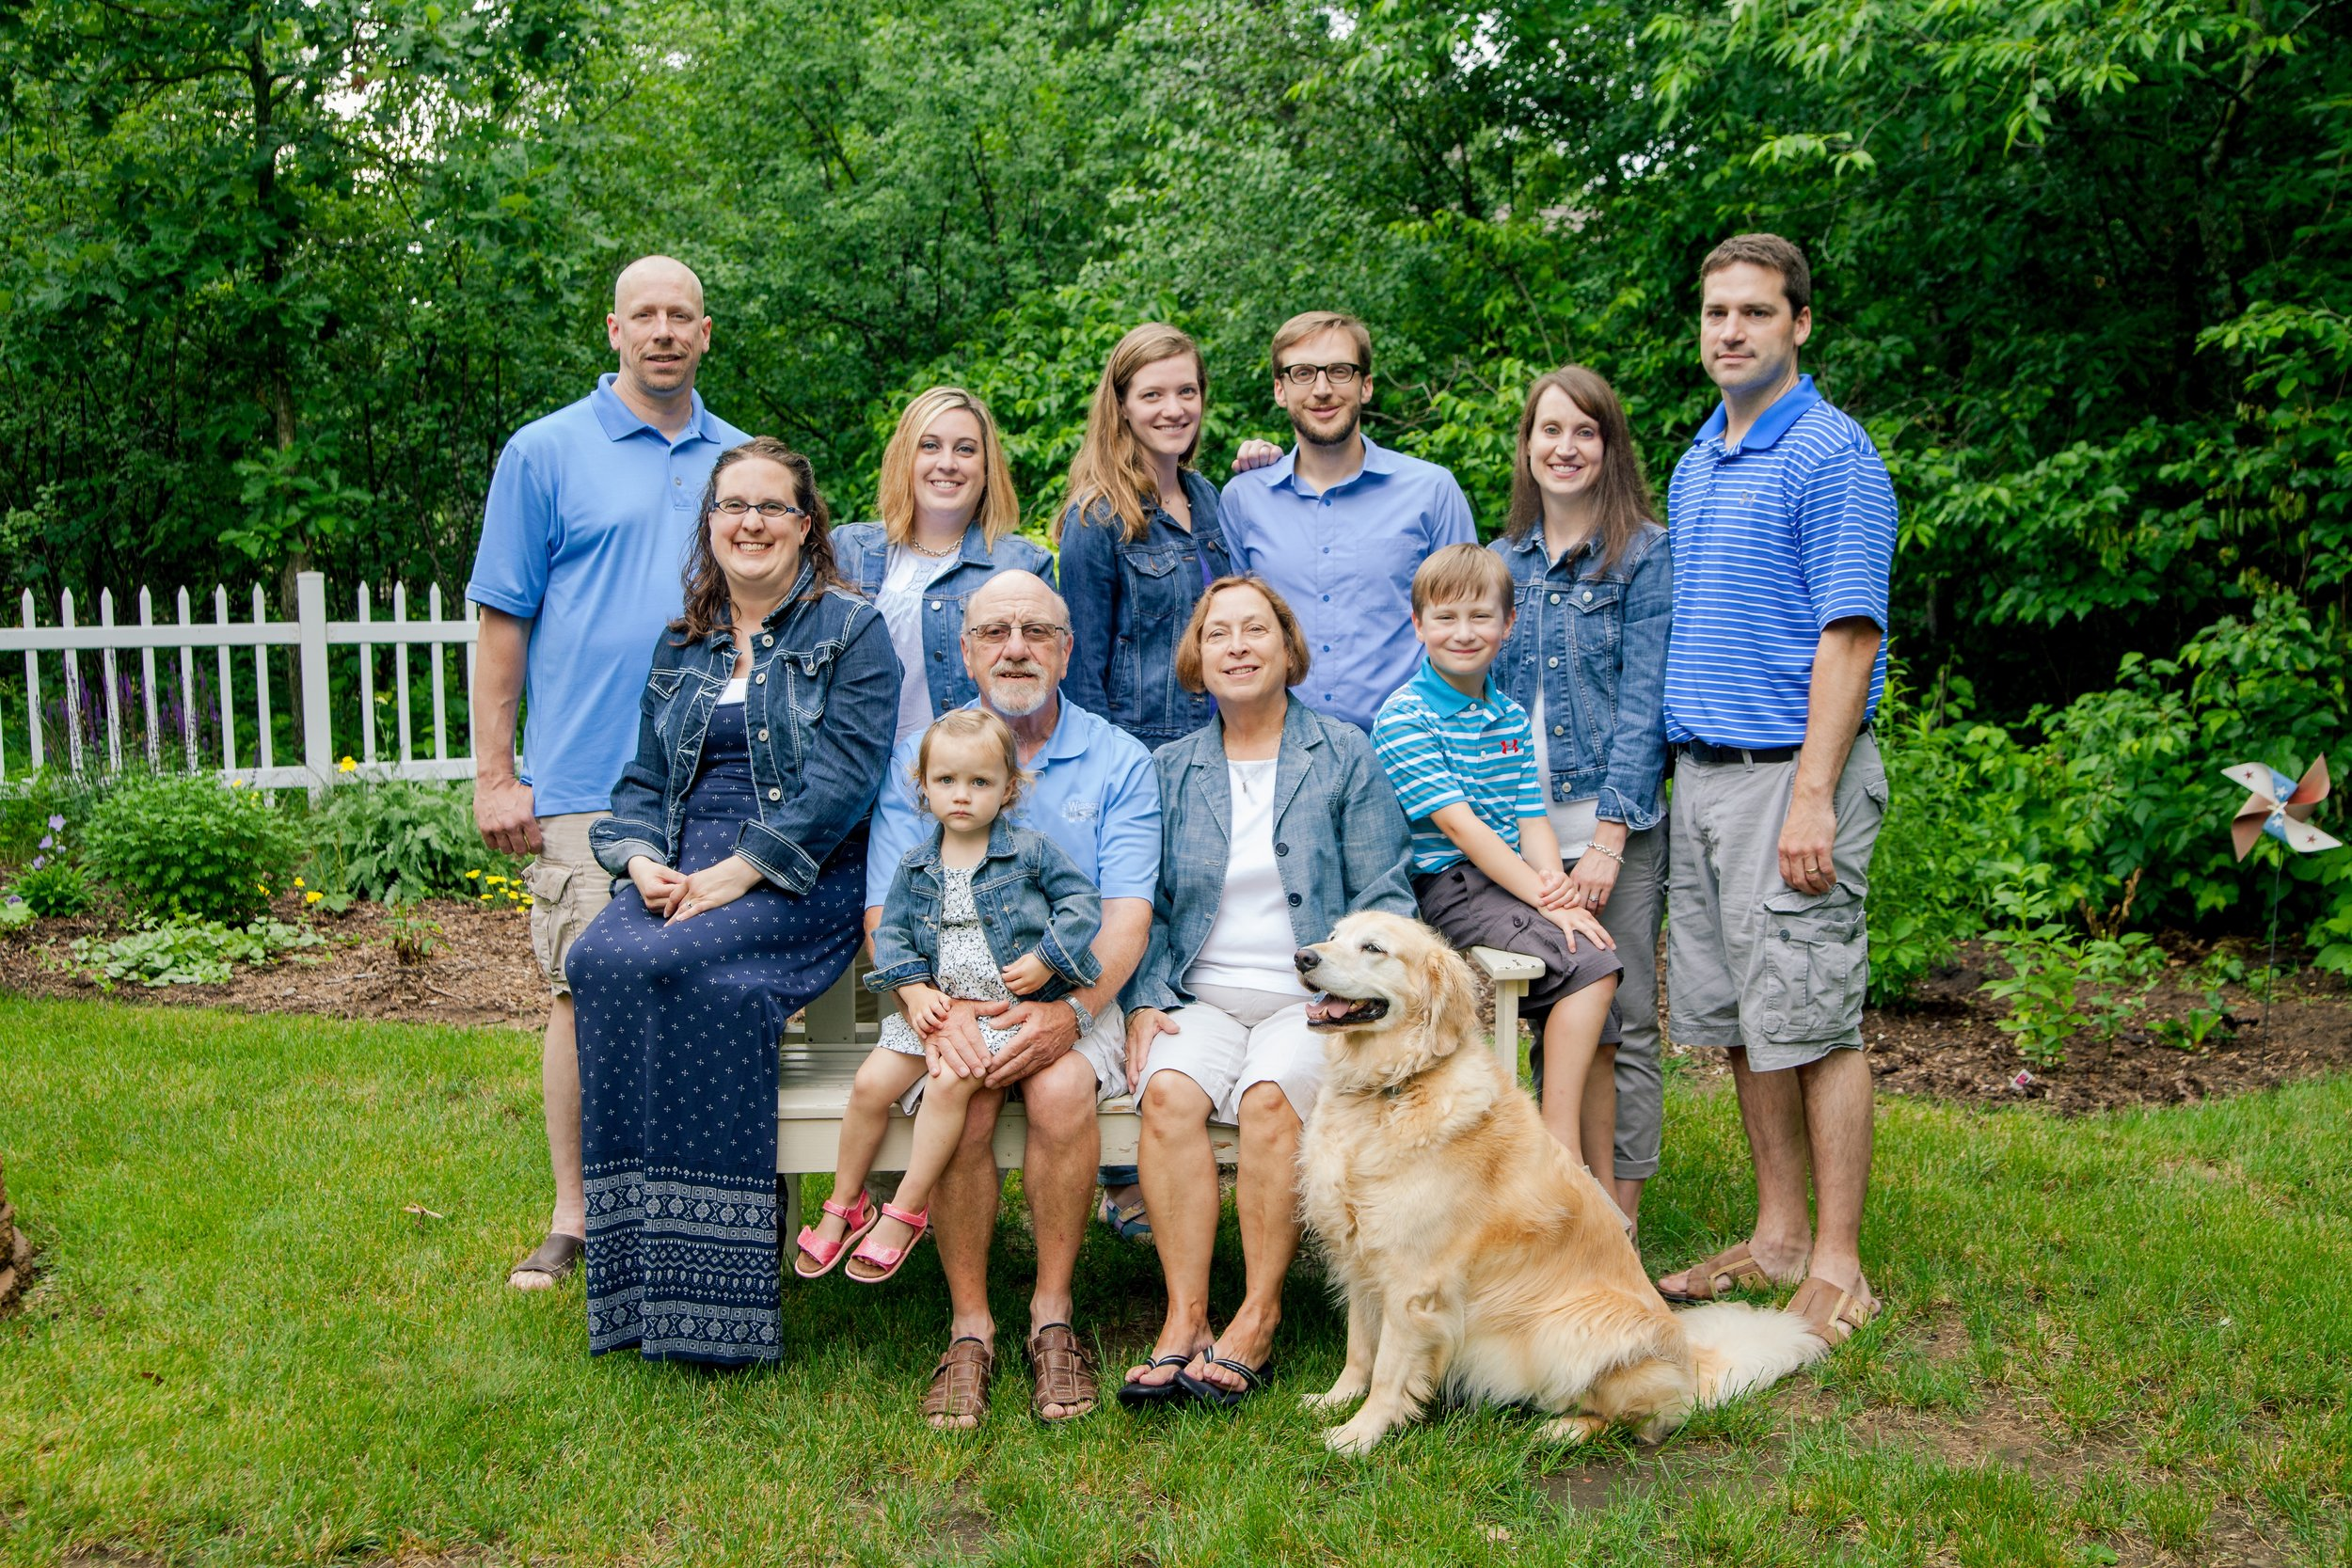 Our loving family